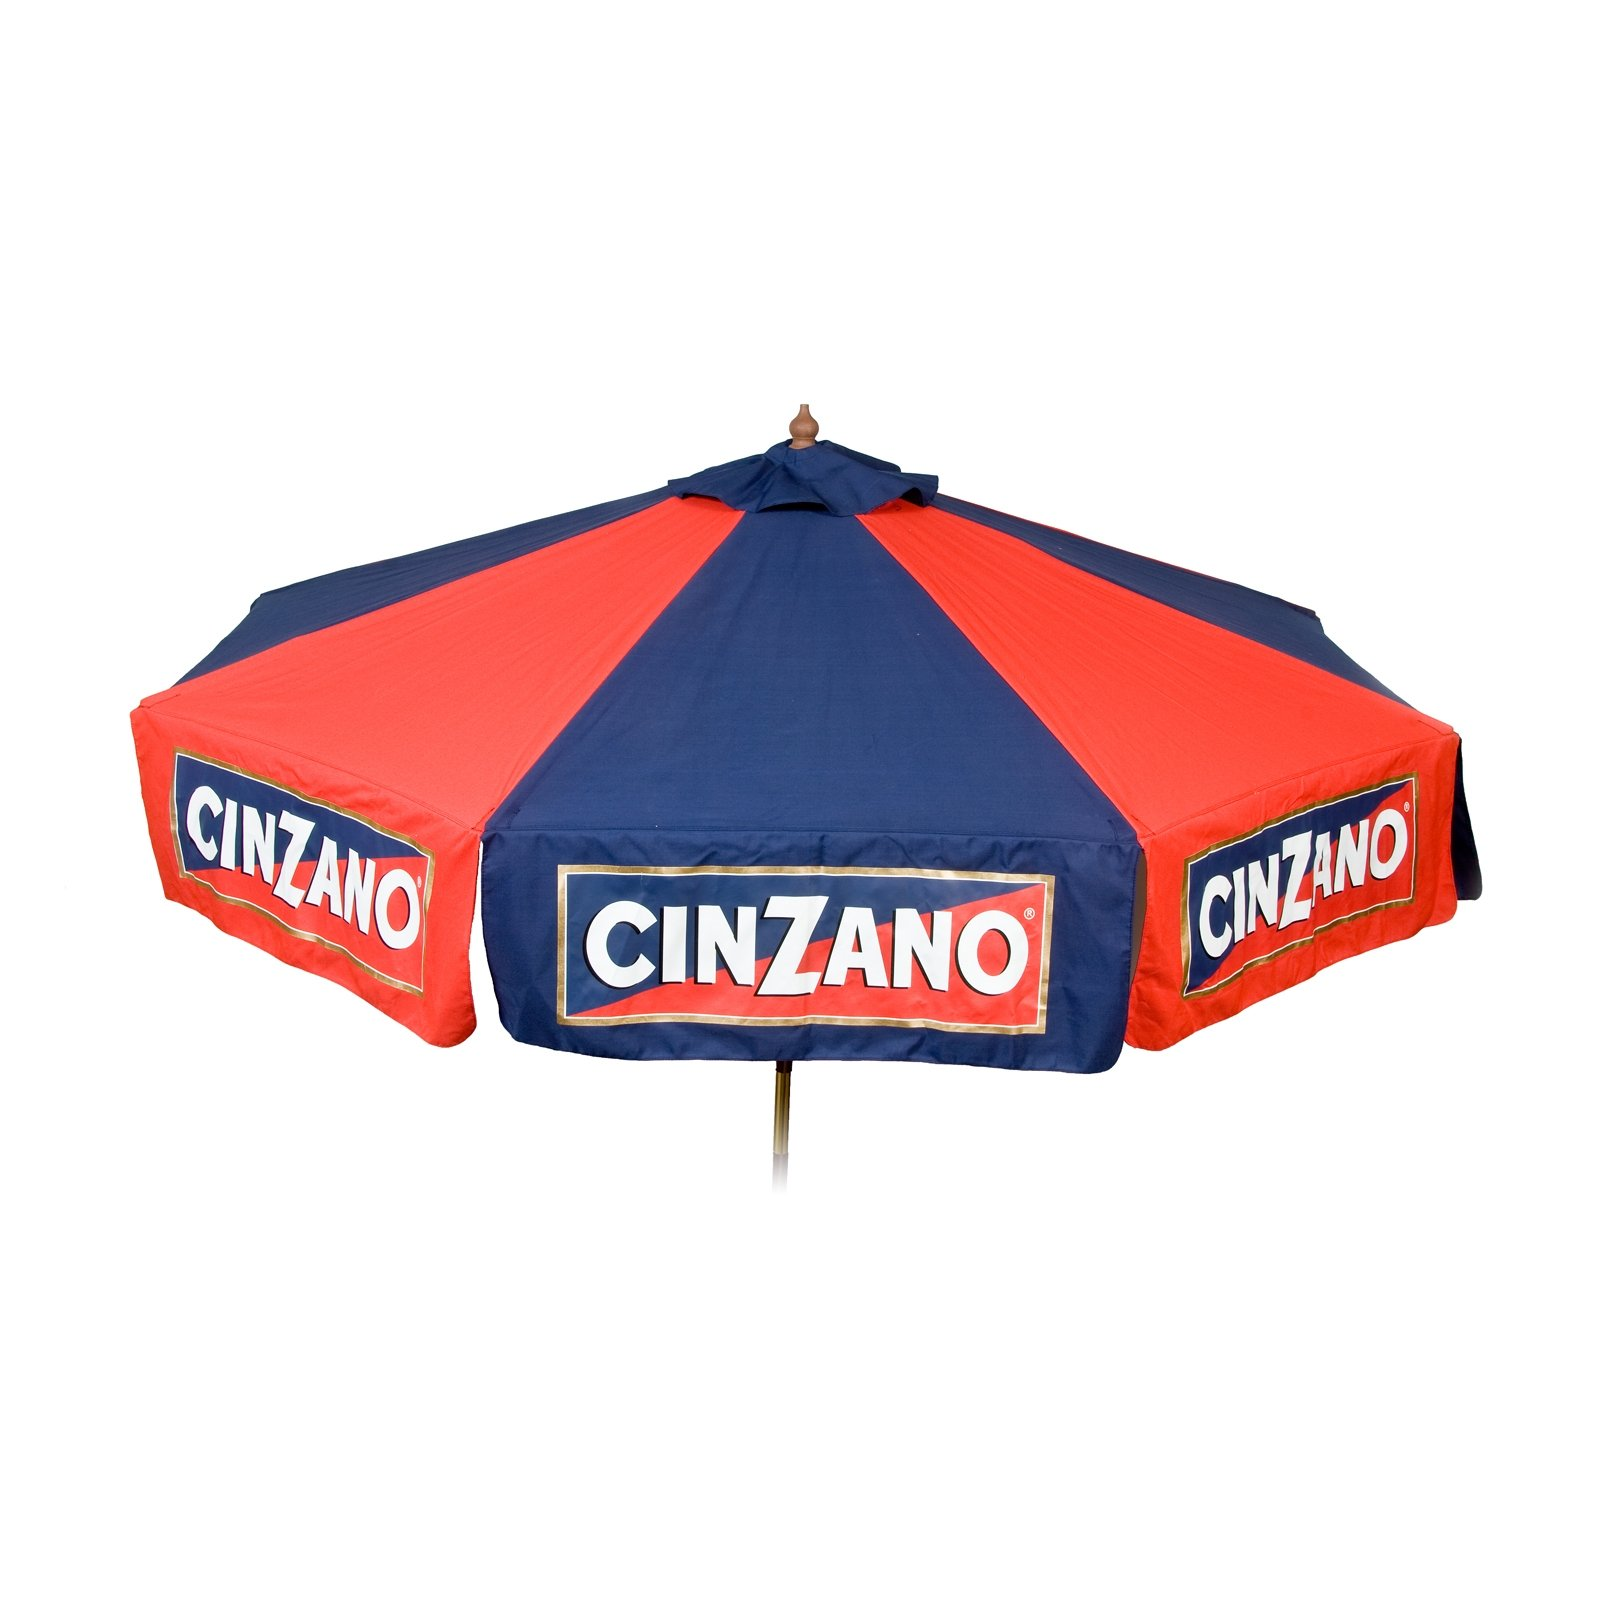 9ft Licensed Cinzano Tilt Patio Outdoor Market Umbrella Home Canopy Shelter